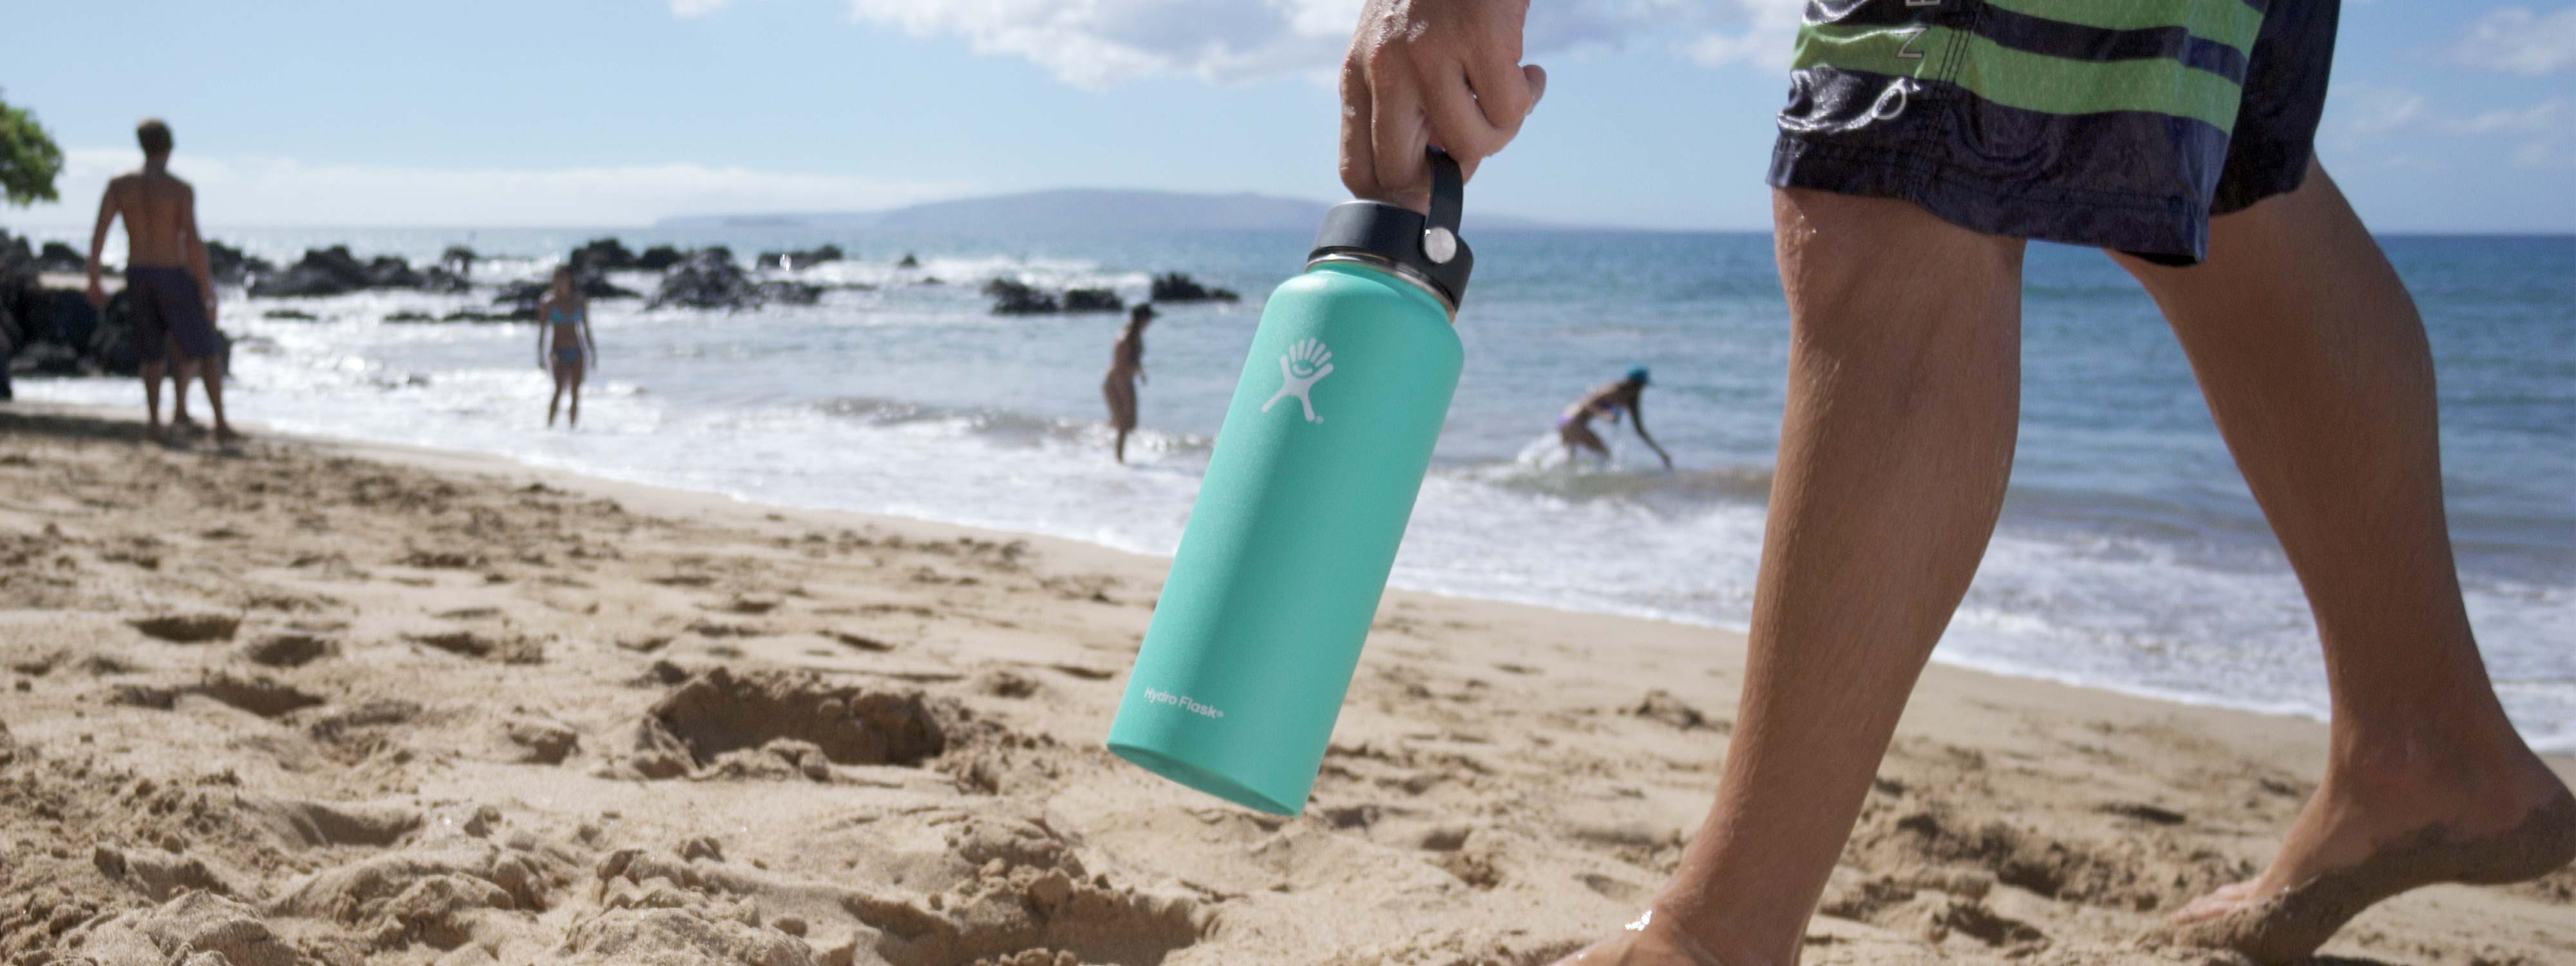 HydroFlask NZ | Reusable Drink Bottles